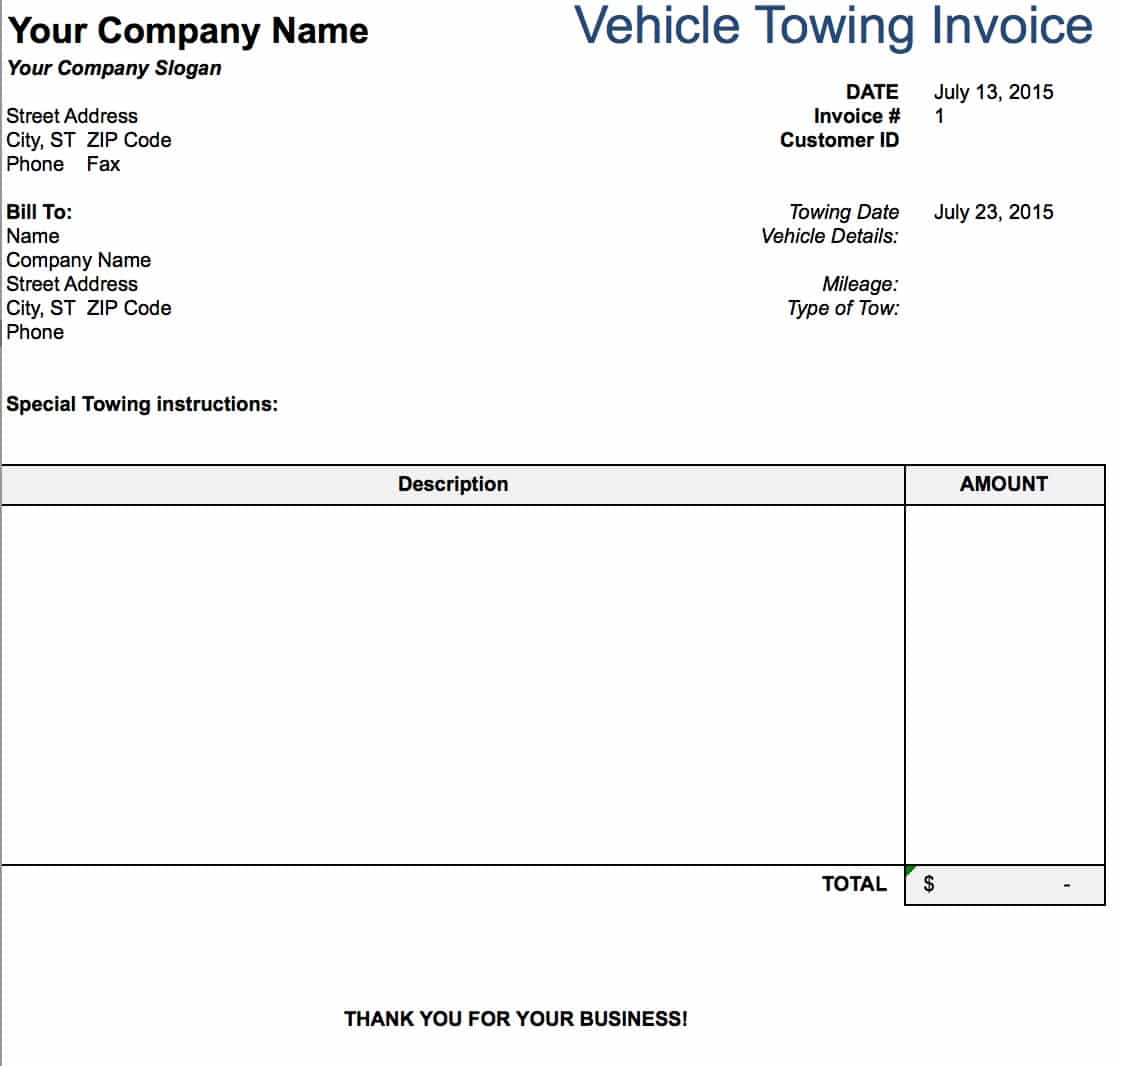 Free Tow Service Invoice Template Excel PDF Word Doc - Free invoice pdf template for service business